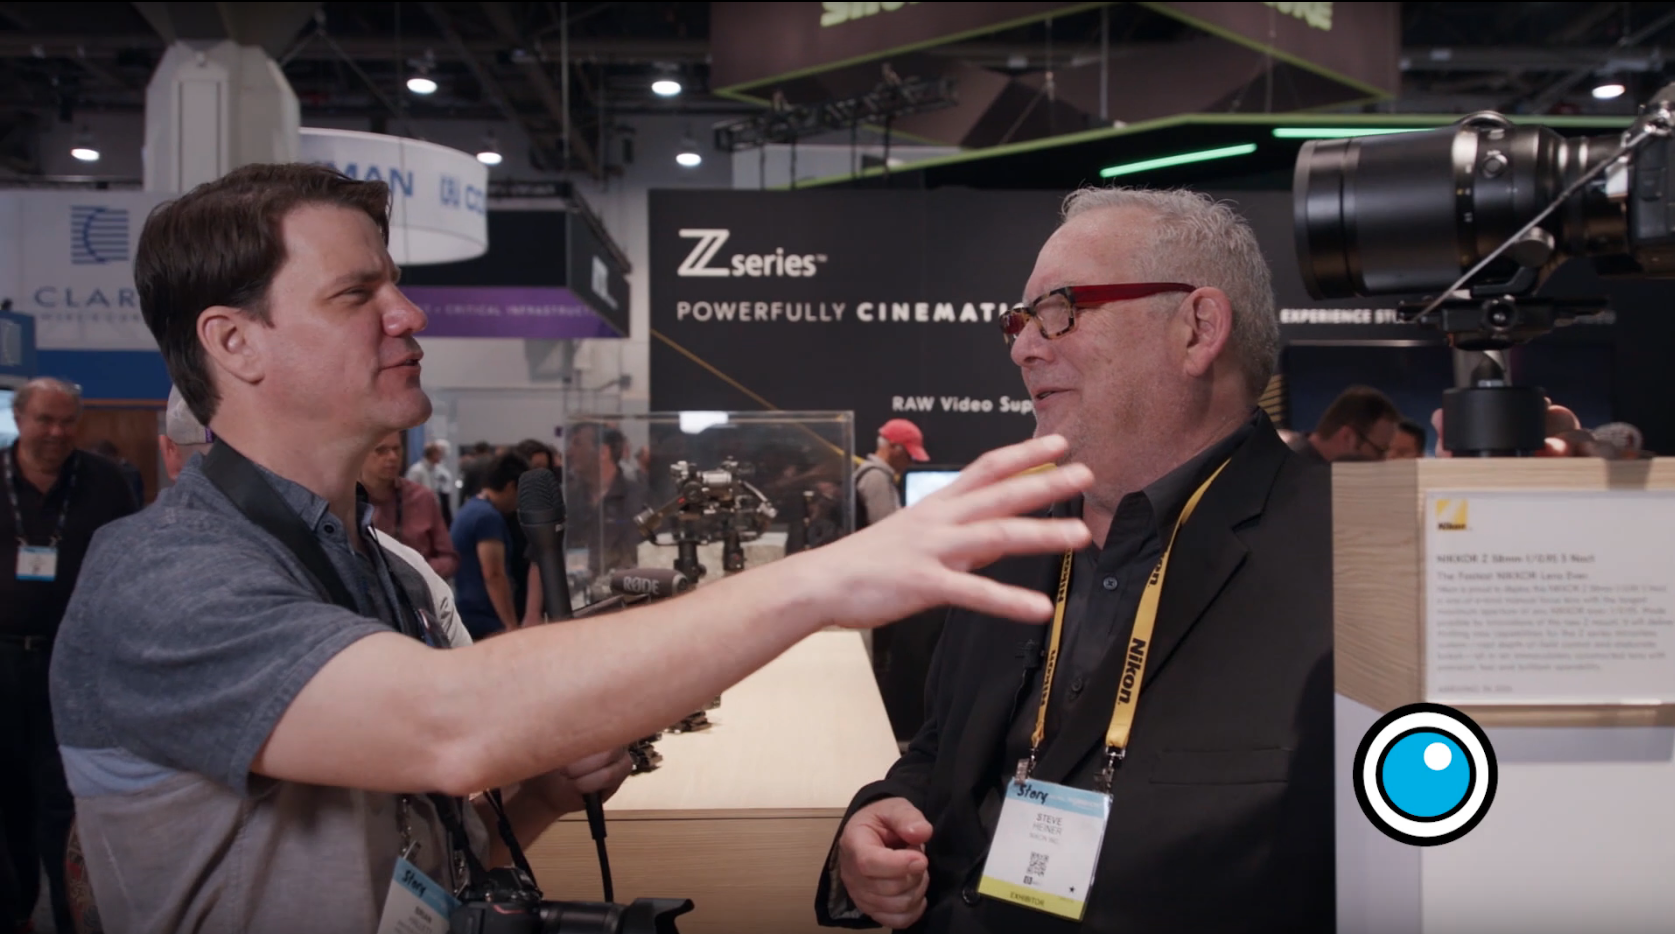 NAB 2019: Nikkor Z 58mm f/0.95, The fastest lens in Nikon's History